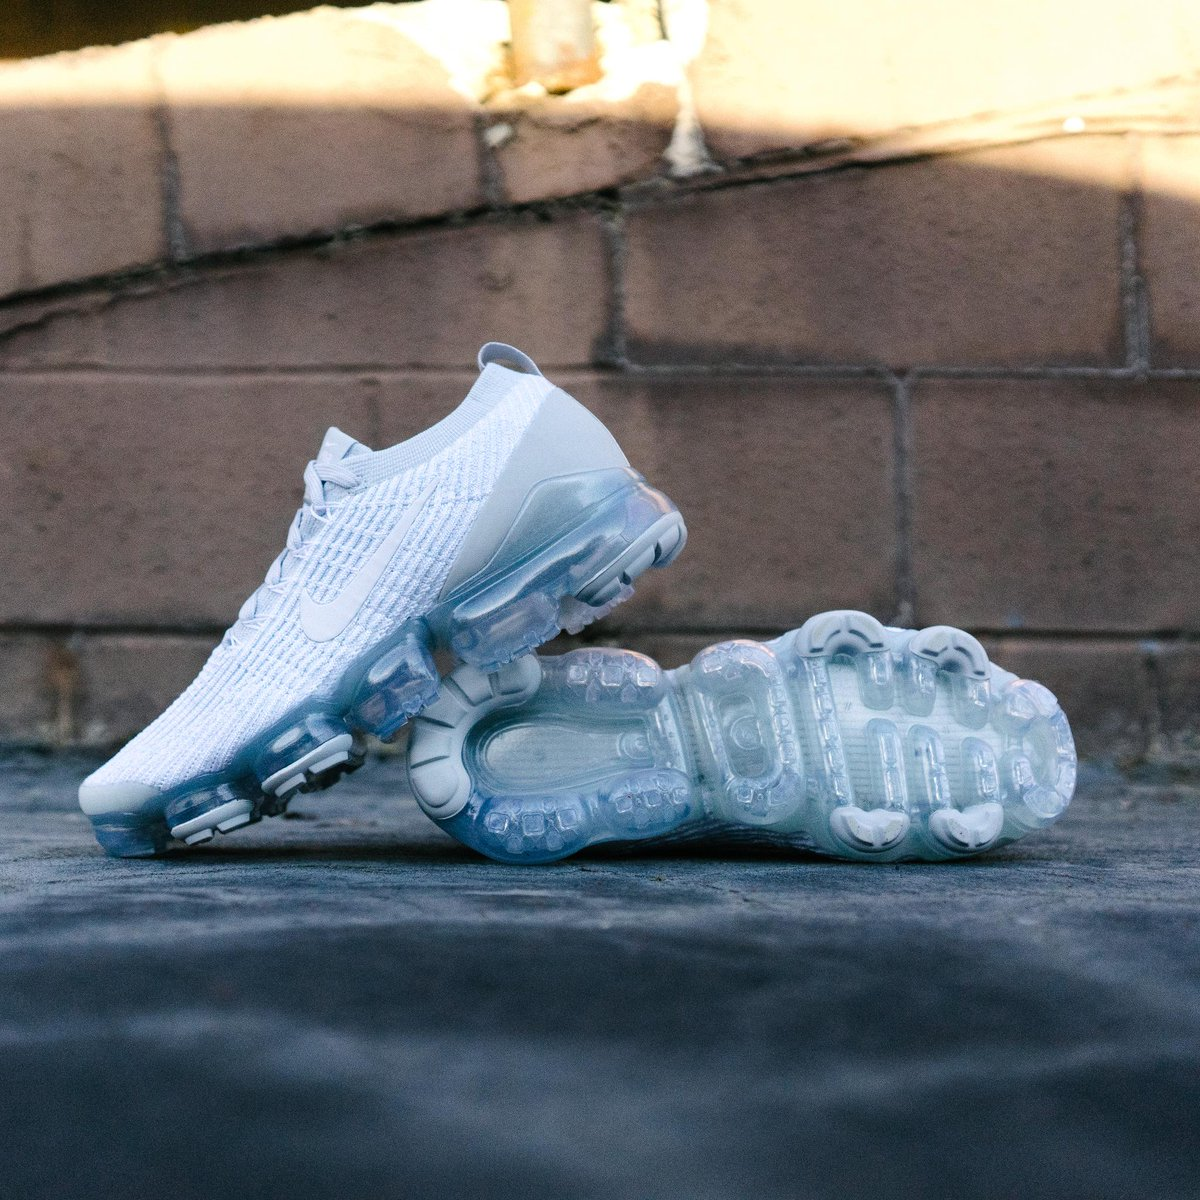 newest 1e249 26369 Sneaker Fact: The #Nike Vapormax is the most flexible ...